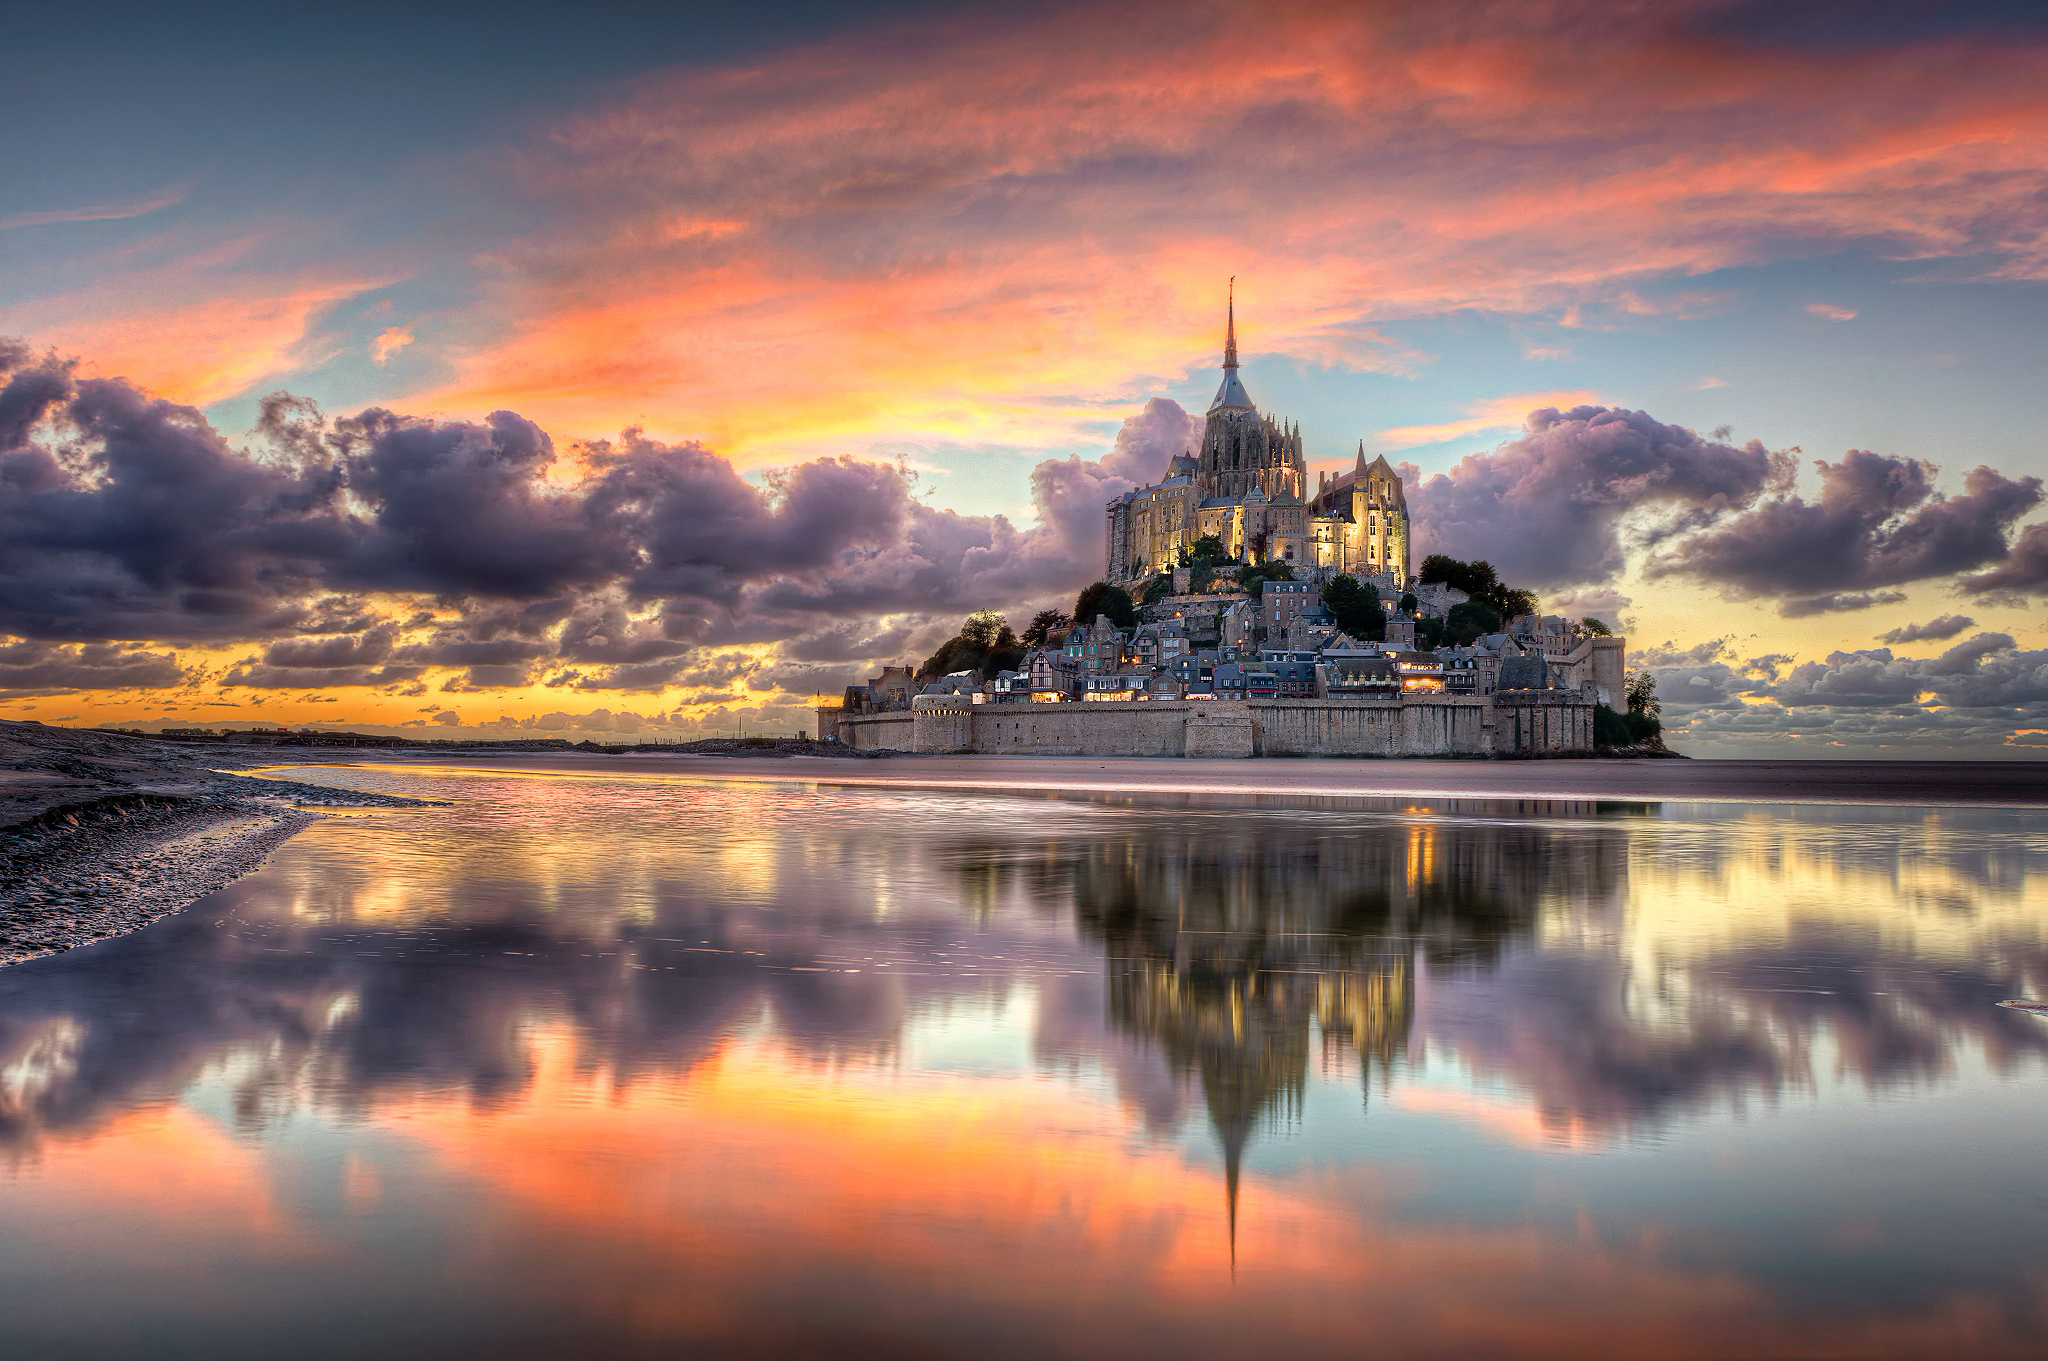 Mont Saint-Michel - UNESCO World Heritage Site